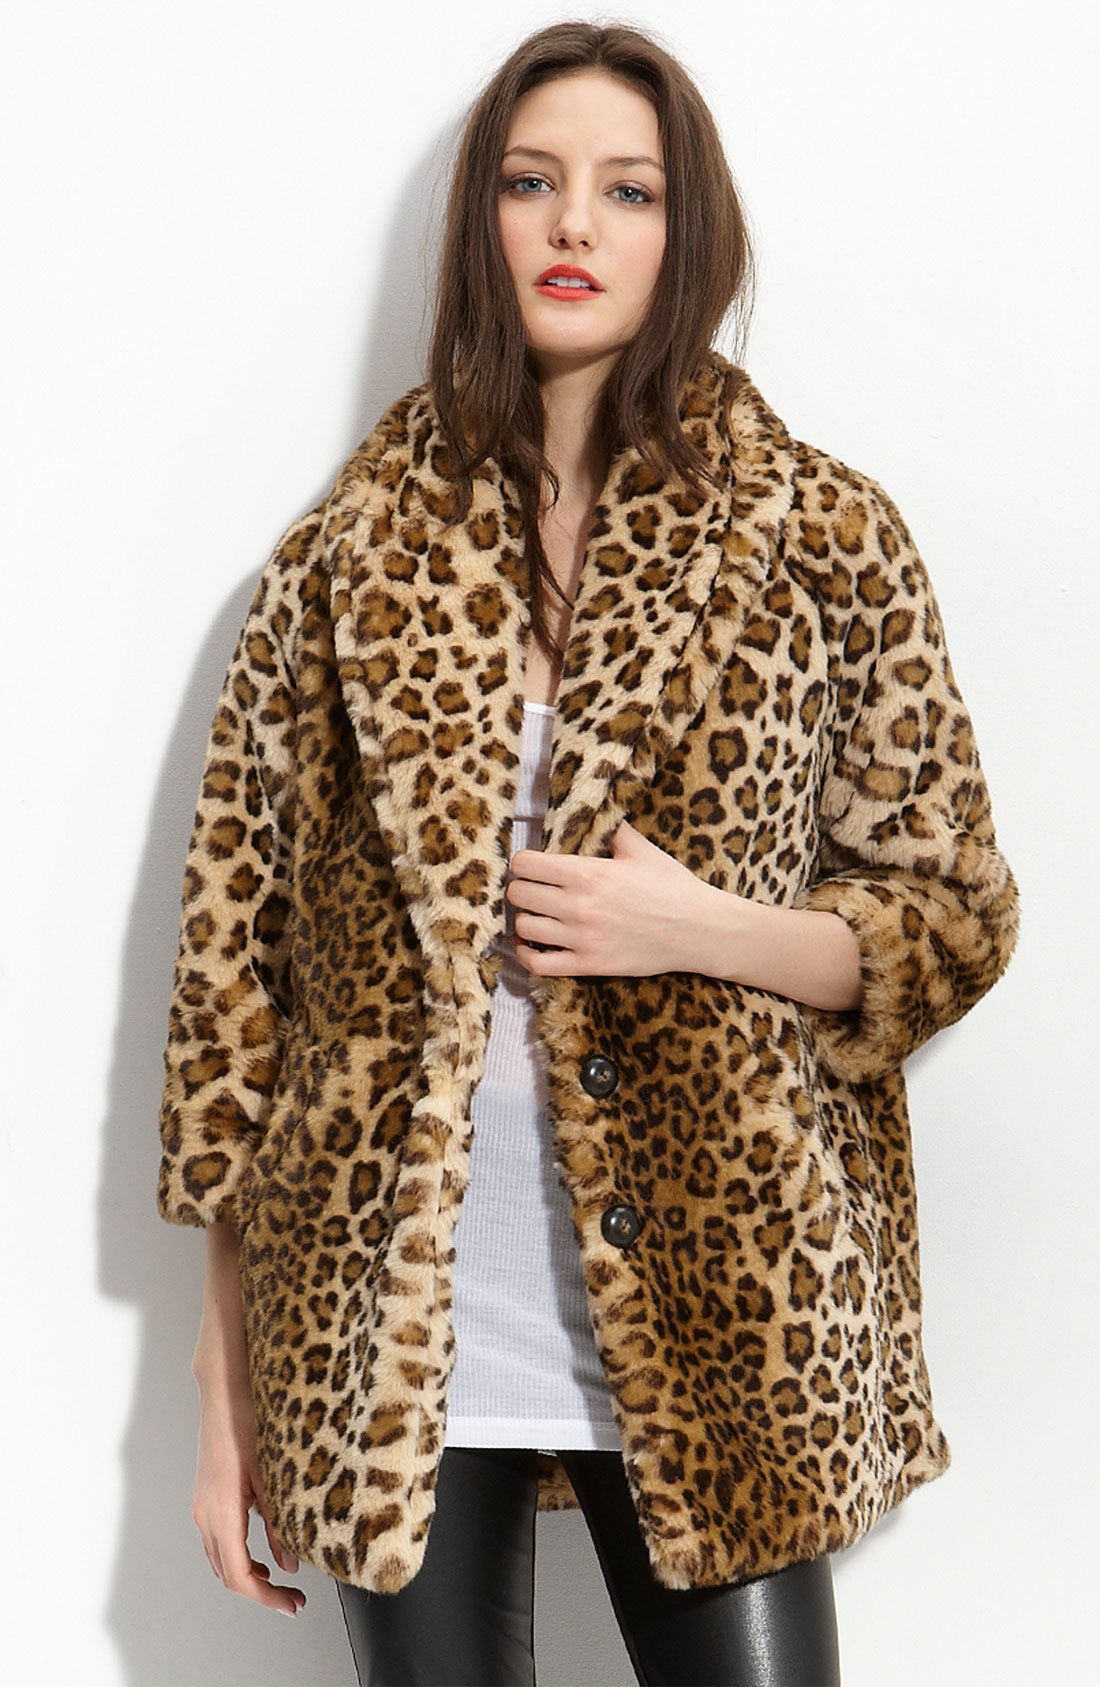 Free shipping Faux Fur Leopard Coat LEOPARD L under $ in Jackets & Coats online store. Best Faux Fur Dress Online and Leopard Print Romper Online for sale at buzz24.ga